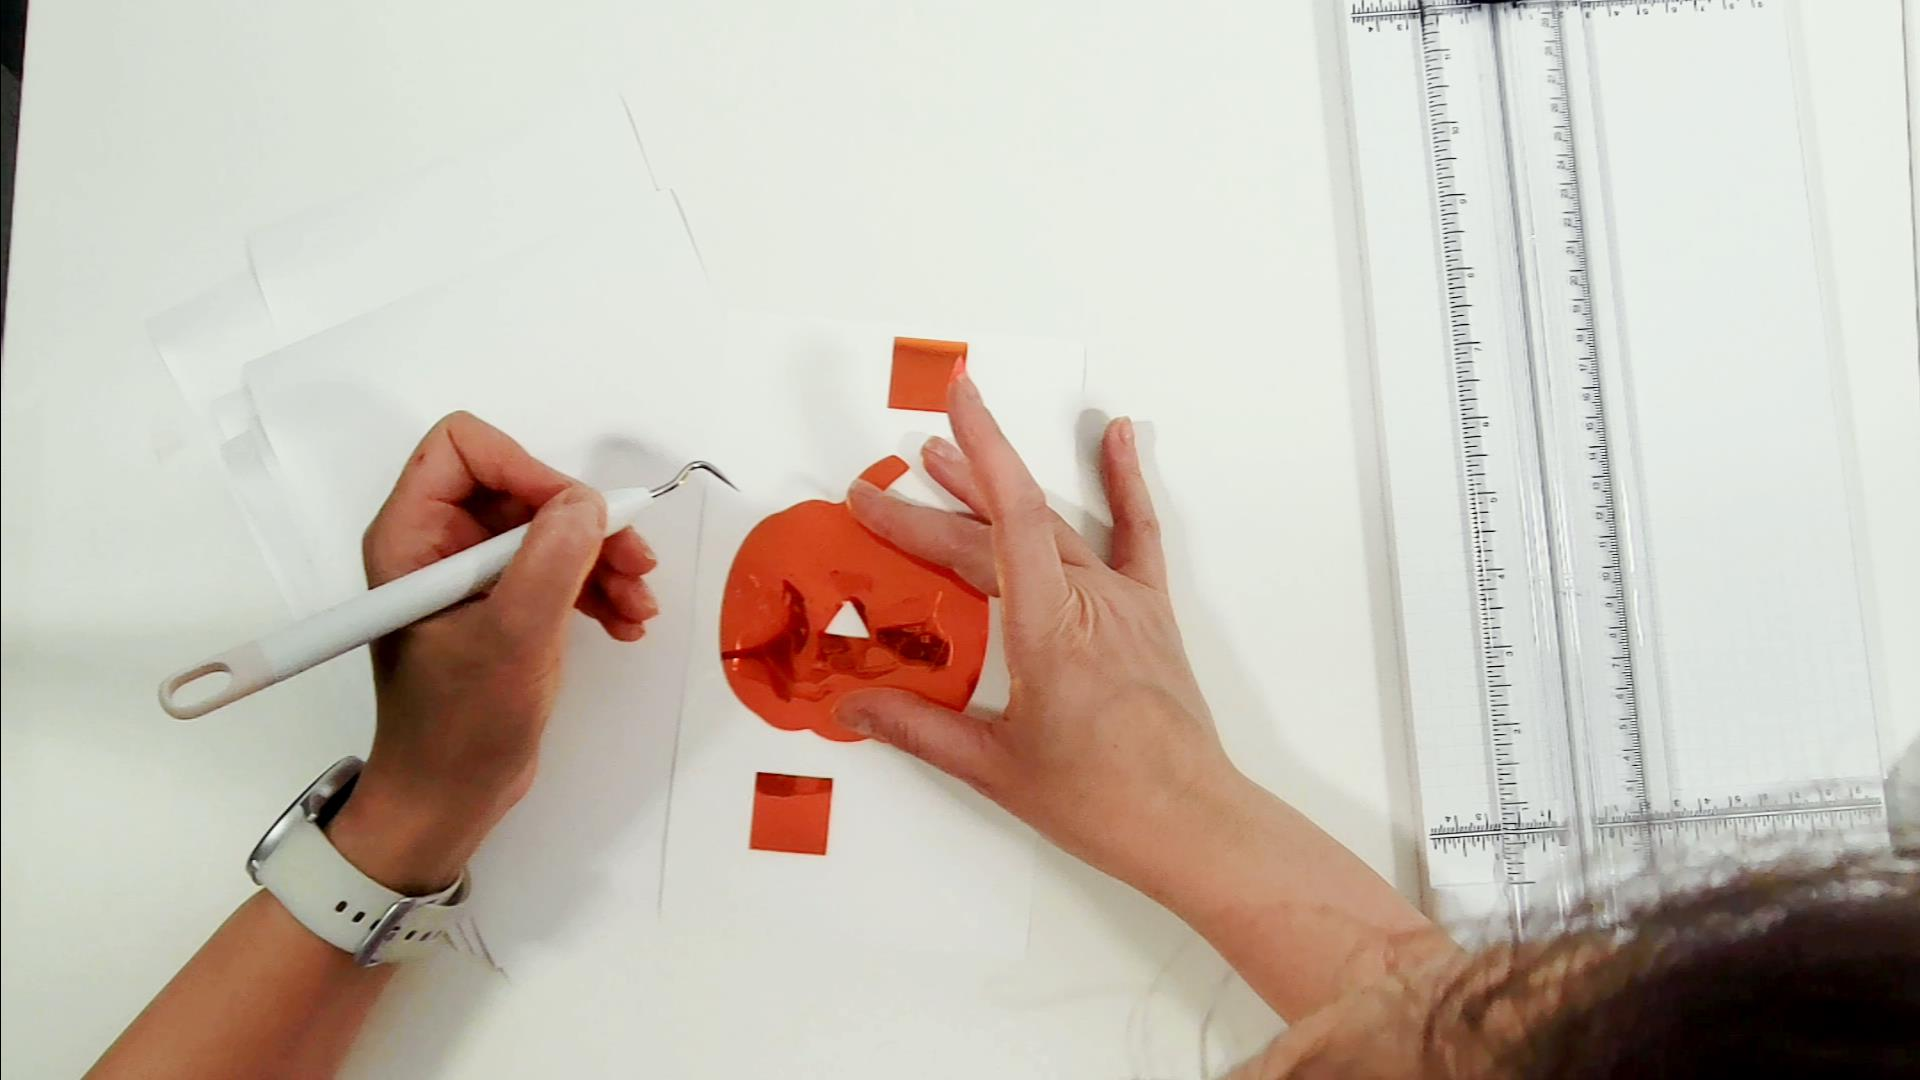 weeding the pumpkin shape from orange vinyl for a welcome sign